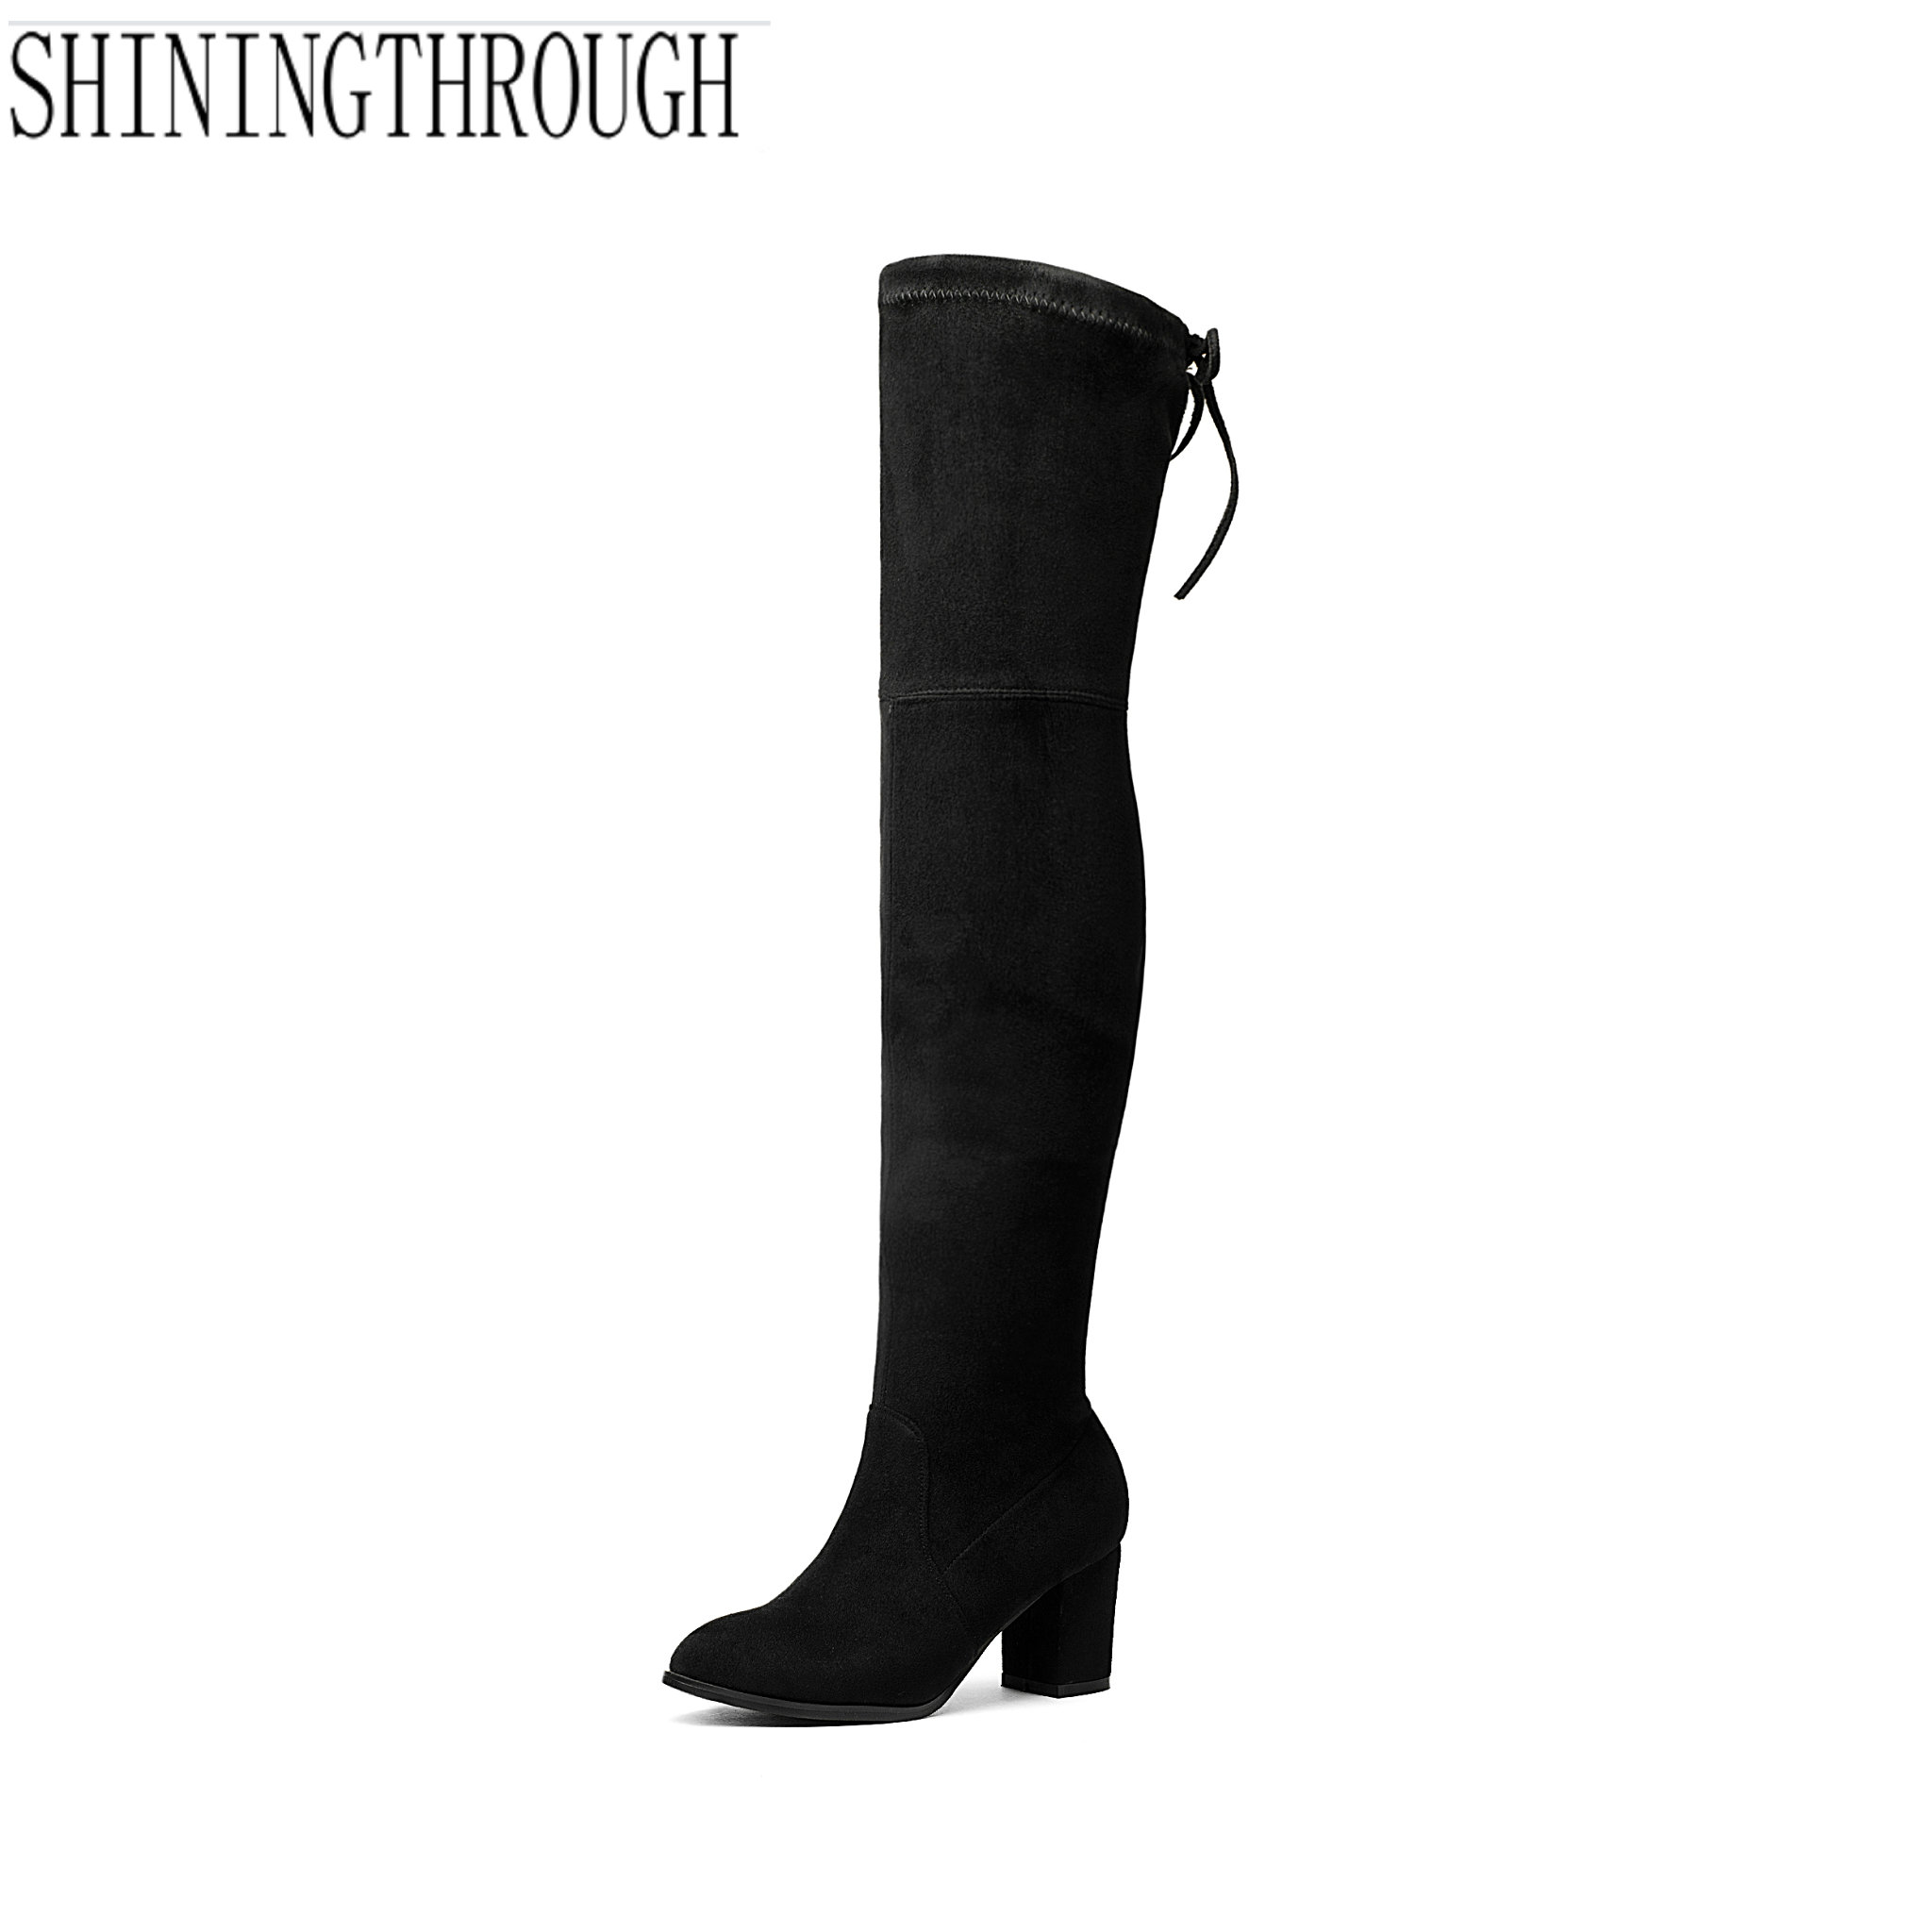 2018 fashion Women boots Stretch Suede Thigh High Boots Sexy Fashion Over the Knee Boots High Heels Woman Shoes Fit Botas Mujer mixed colors fashion women boots autumn and winter thick heels knight boots stretch knee high shoes zapatos mujer botas